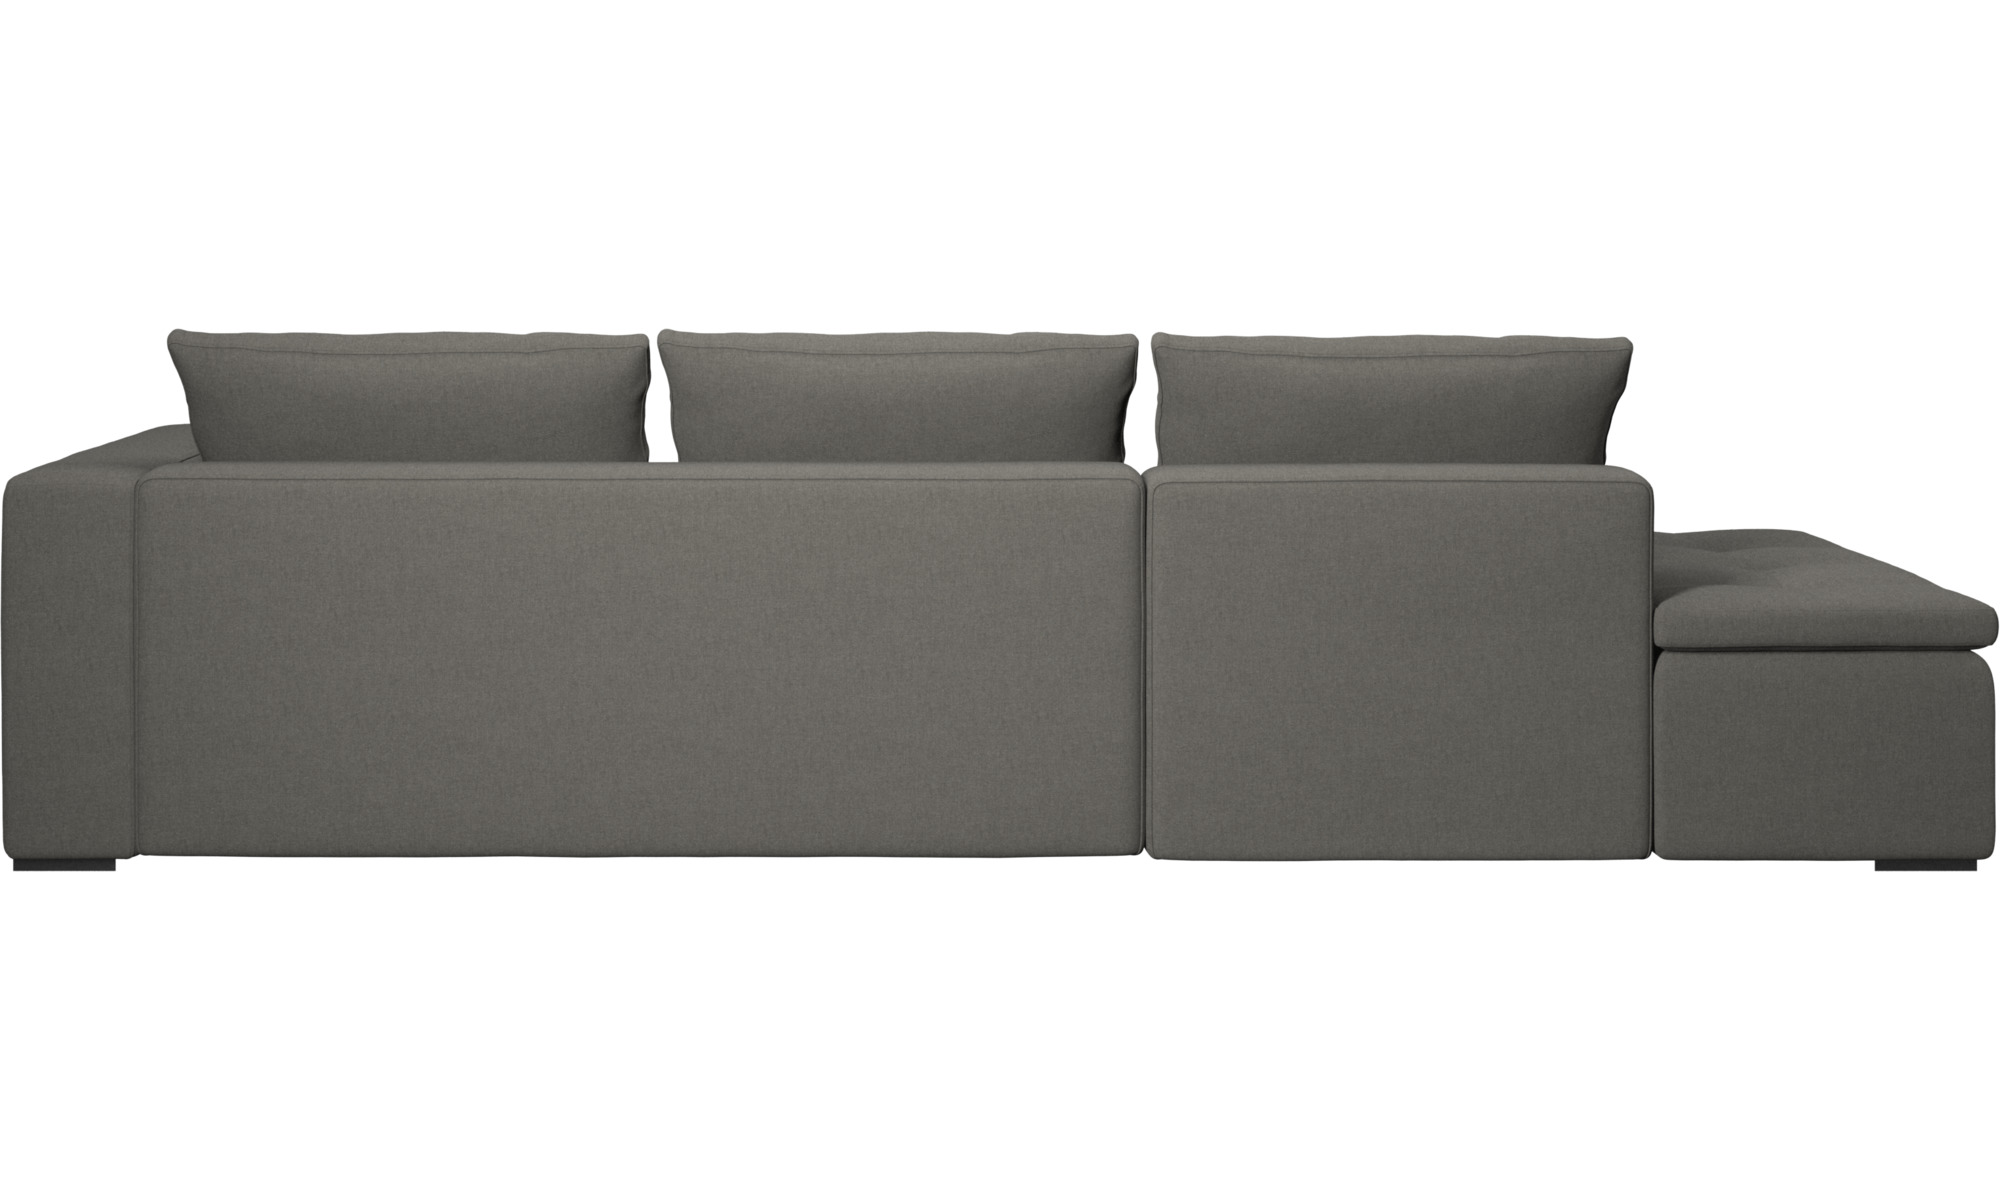 Sofas With Open End Mezzo Sofa Lounging Unit Gray Fabric